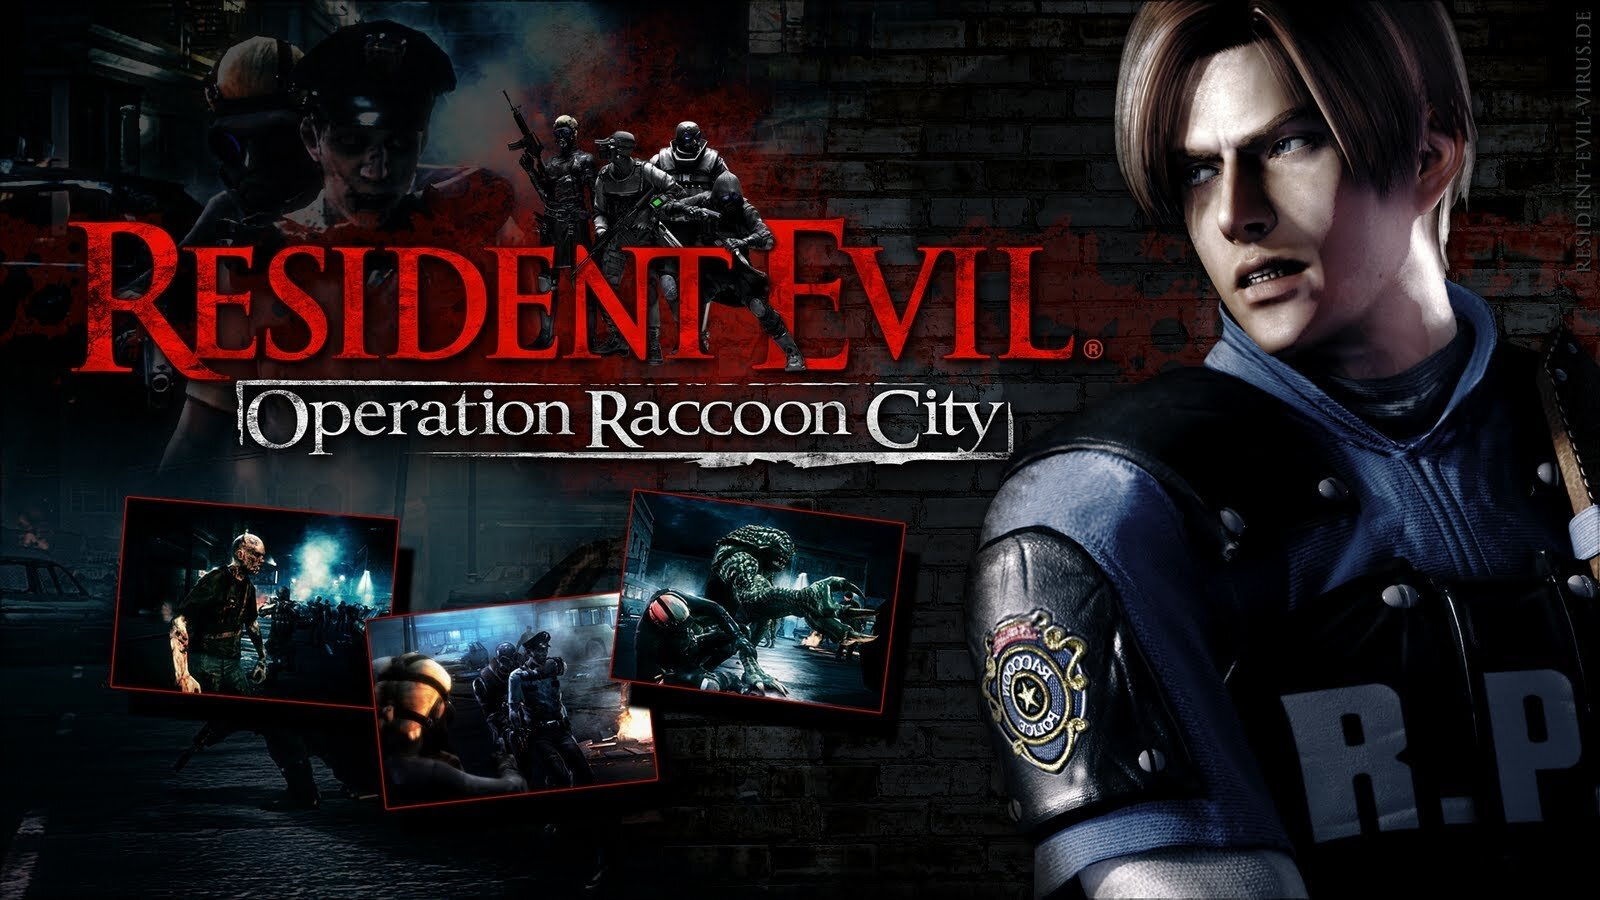 Resident Evil: Operation Raccoon City